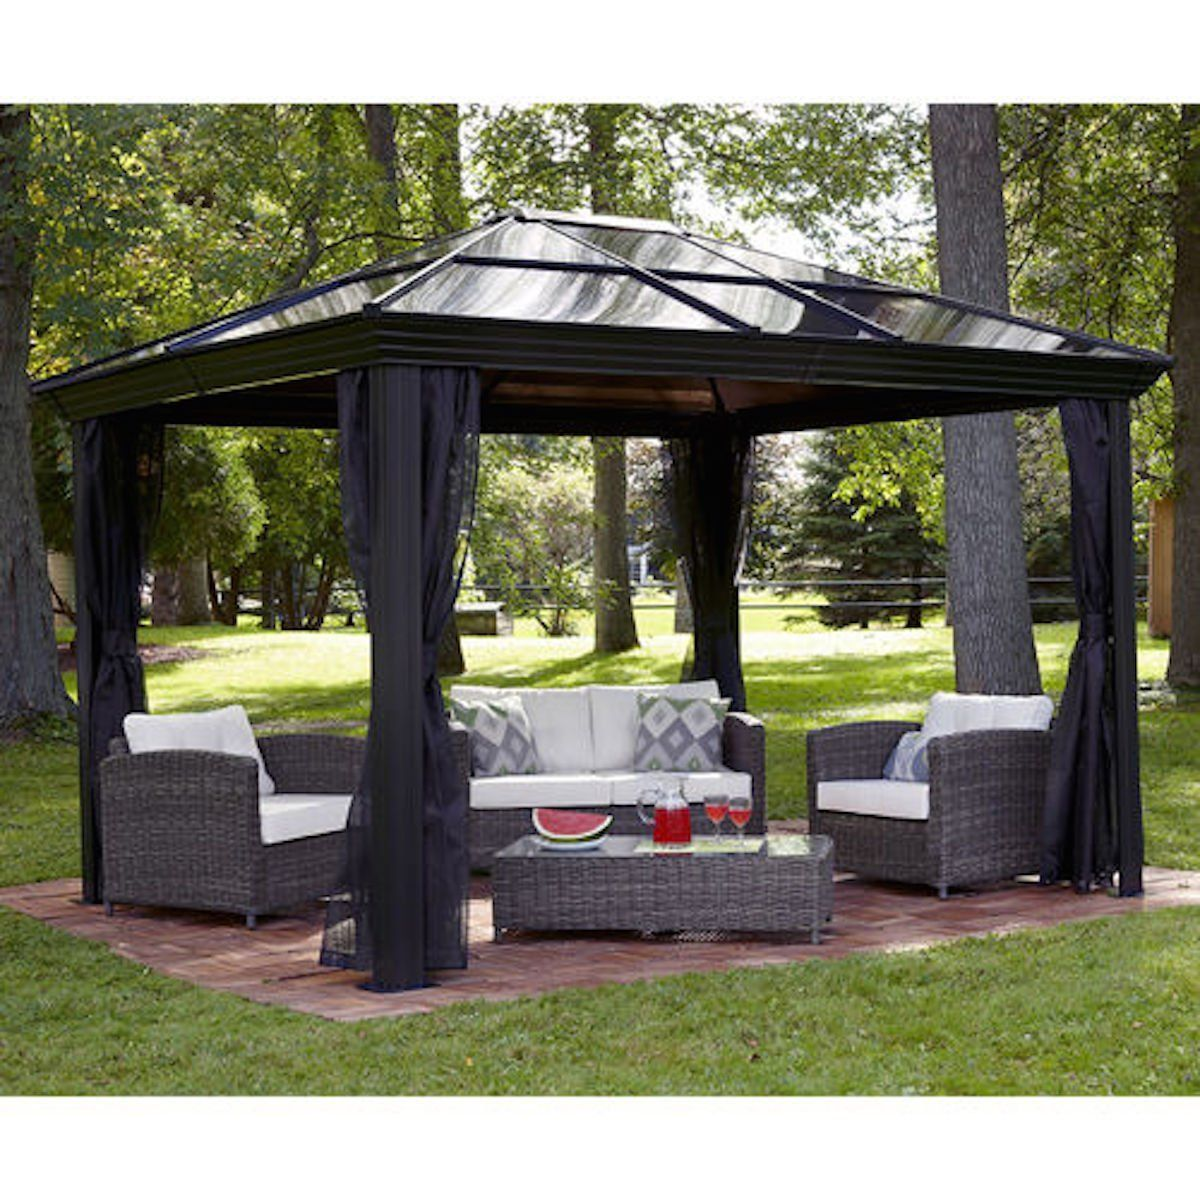 Gazebo canopy pergola this 10 x 12 hardtop gazebo tent for Outdoor furniture gazebo